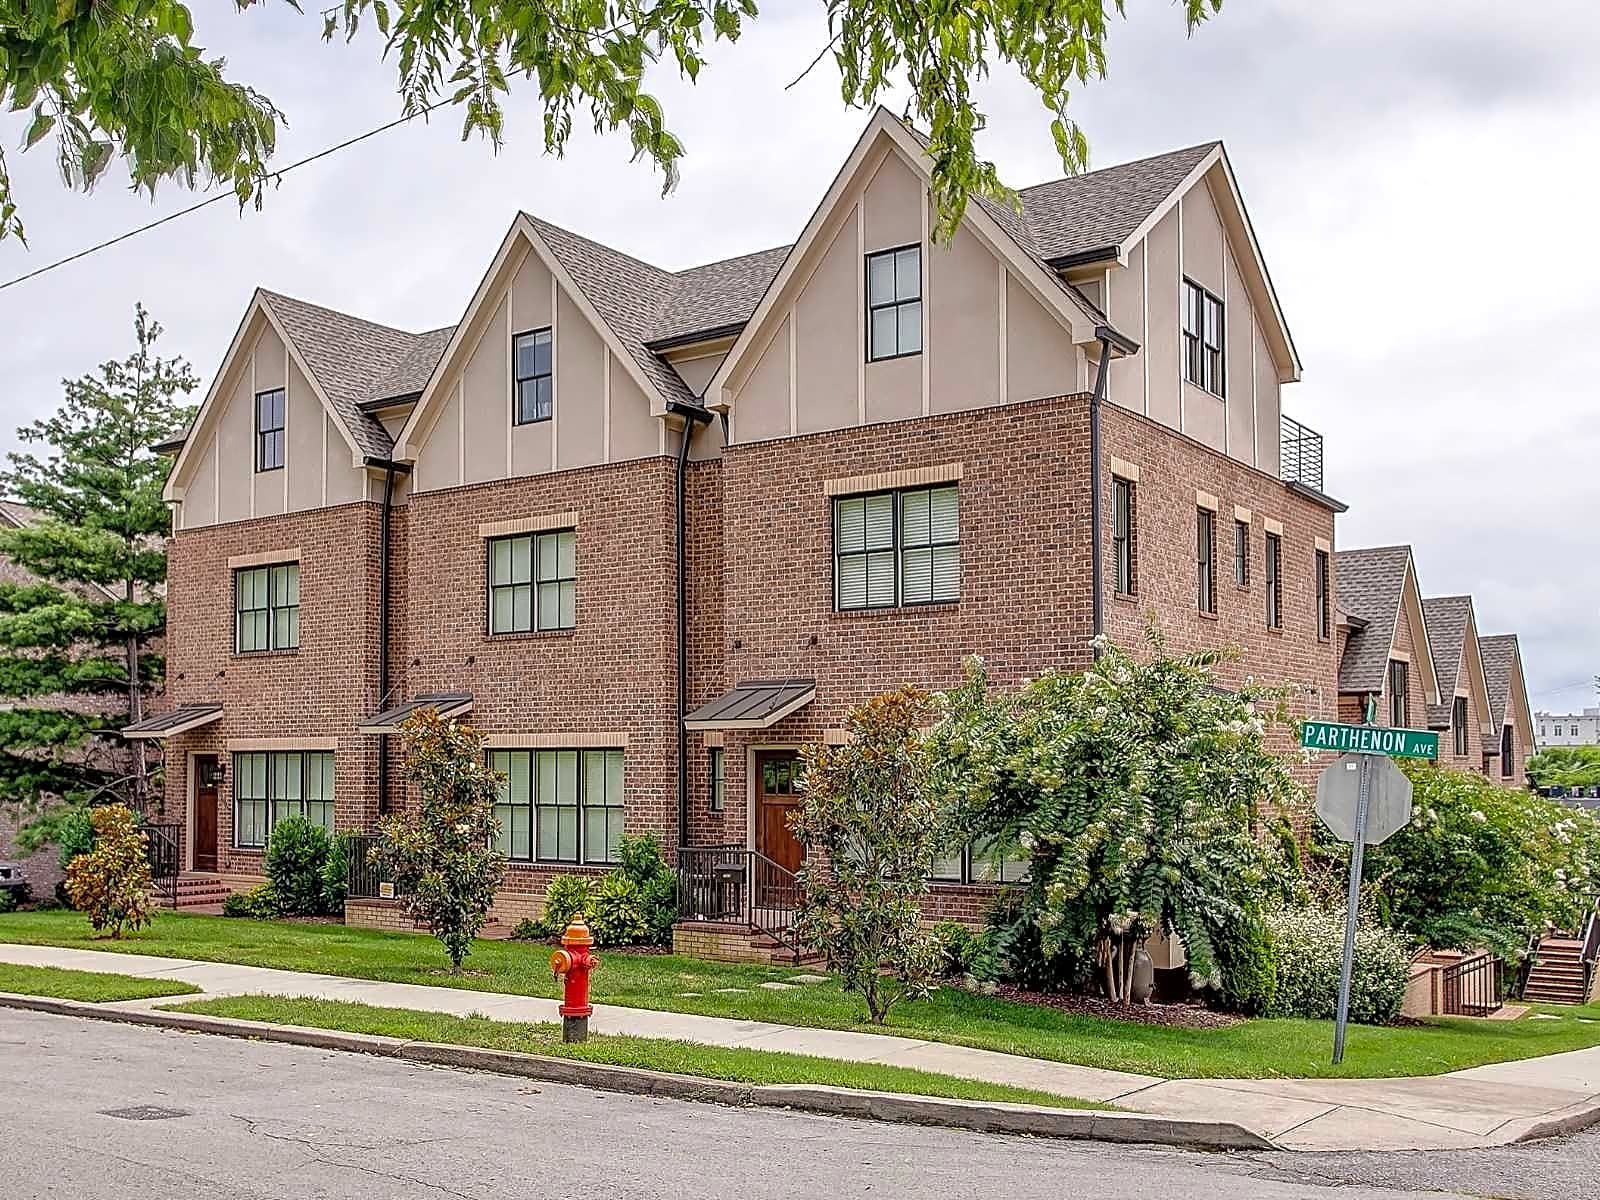 Gianikas Properties Apartments  Nashville, Tn 37209. Drug Rehabilitation Programs. Loan Modification Agreement North End Dental. Nuclear Cardiology Boards Payday Loans Rates. Most Secure Online Banking Pain In Toe Joint. Best Cosmetic Dentist Houston. Business Insurance Agent Community West Bank. How Many Years Does It Take To Become A Teacher. Small Loans For Business Start Up